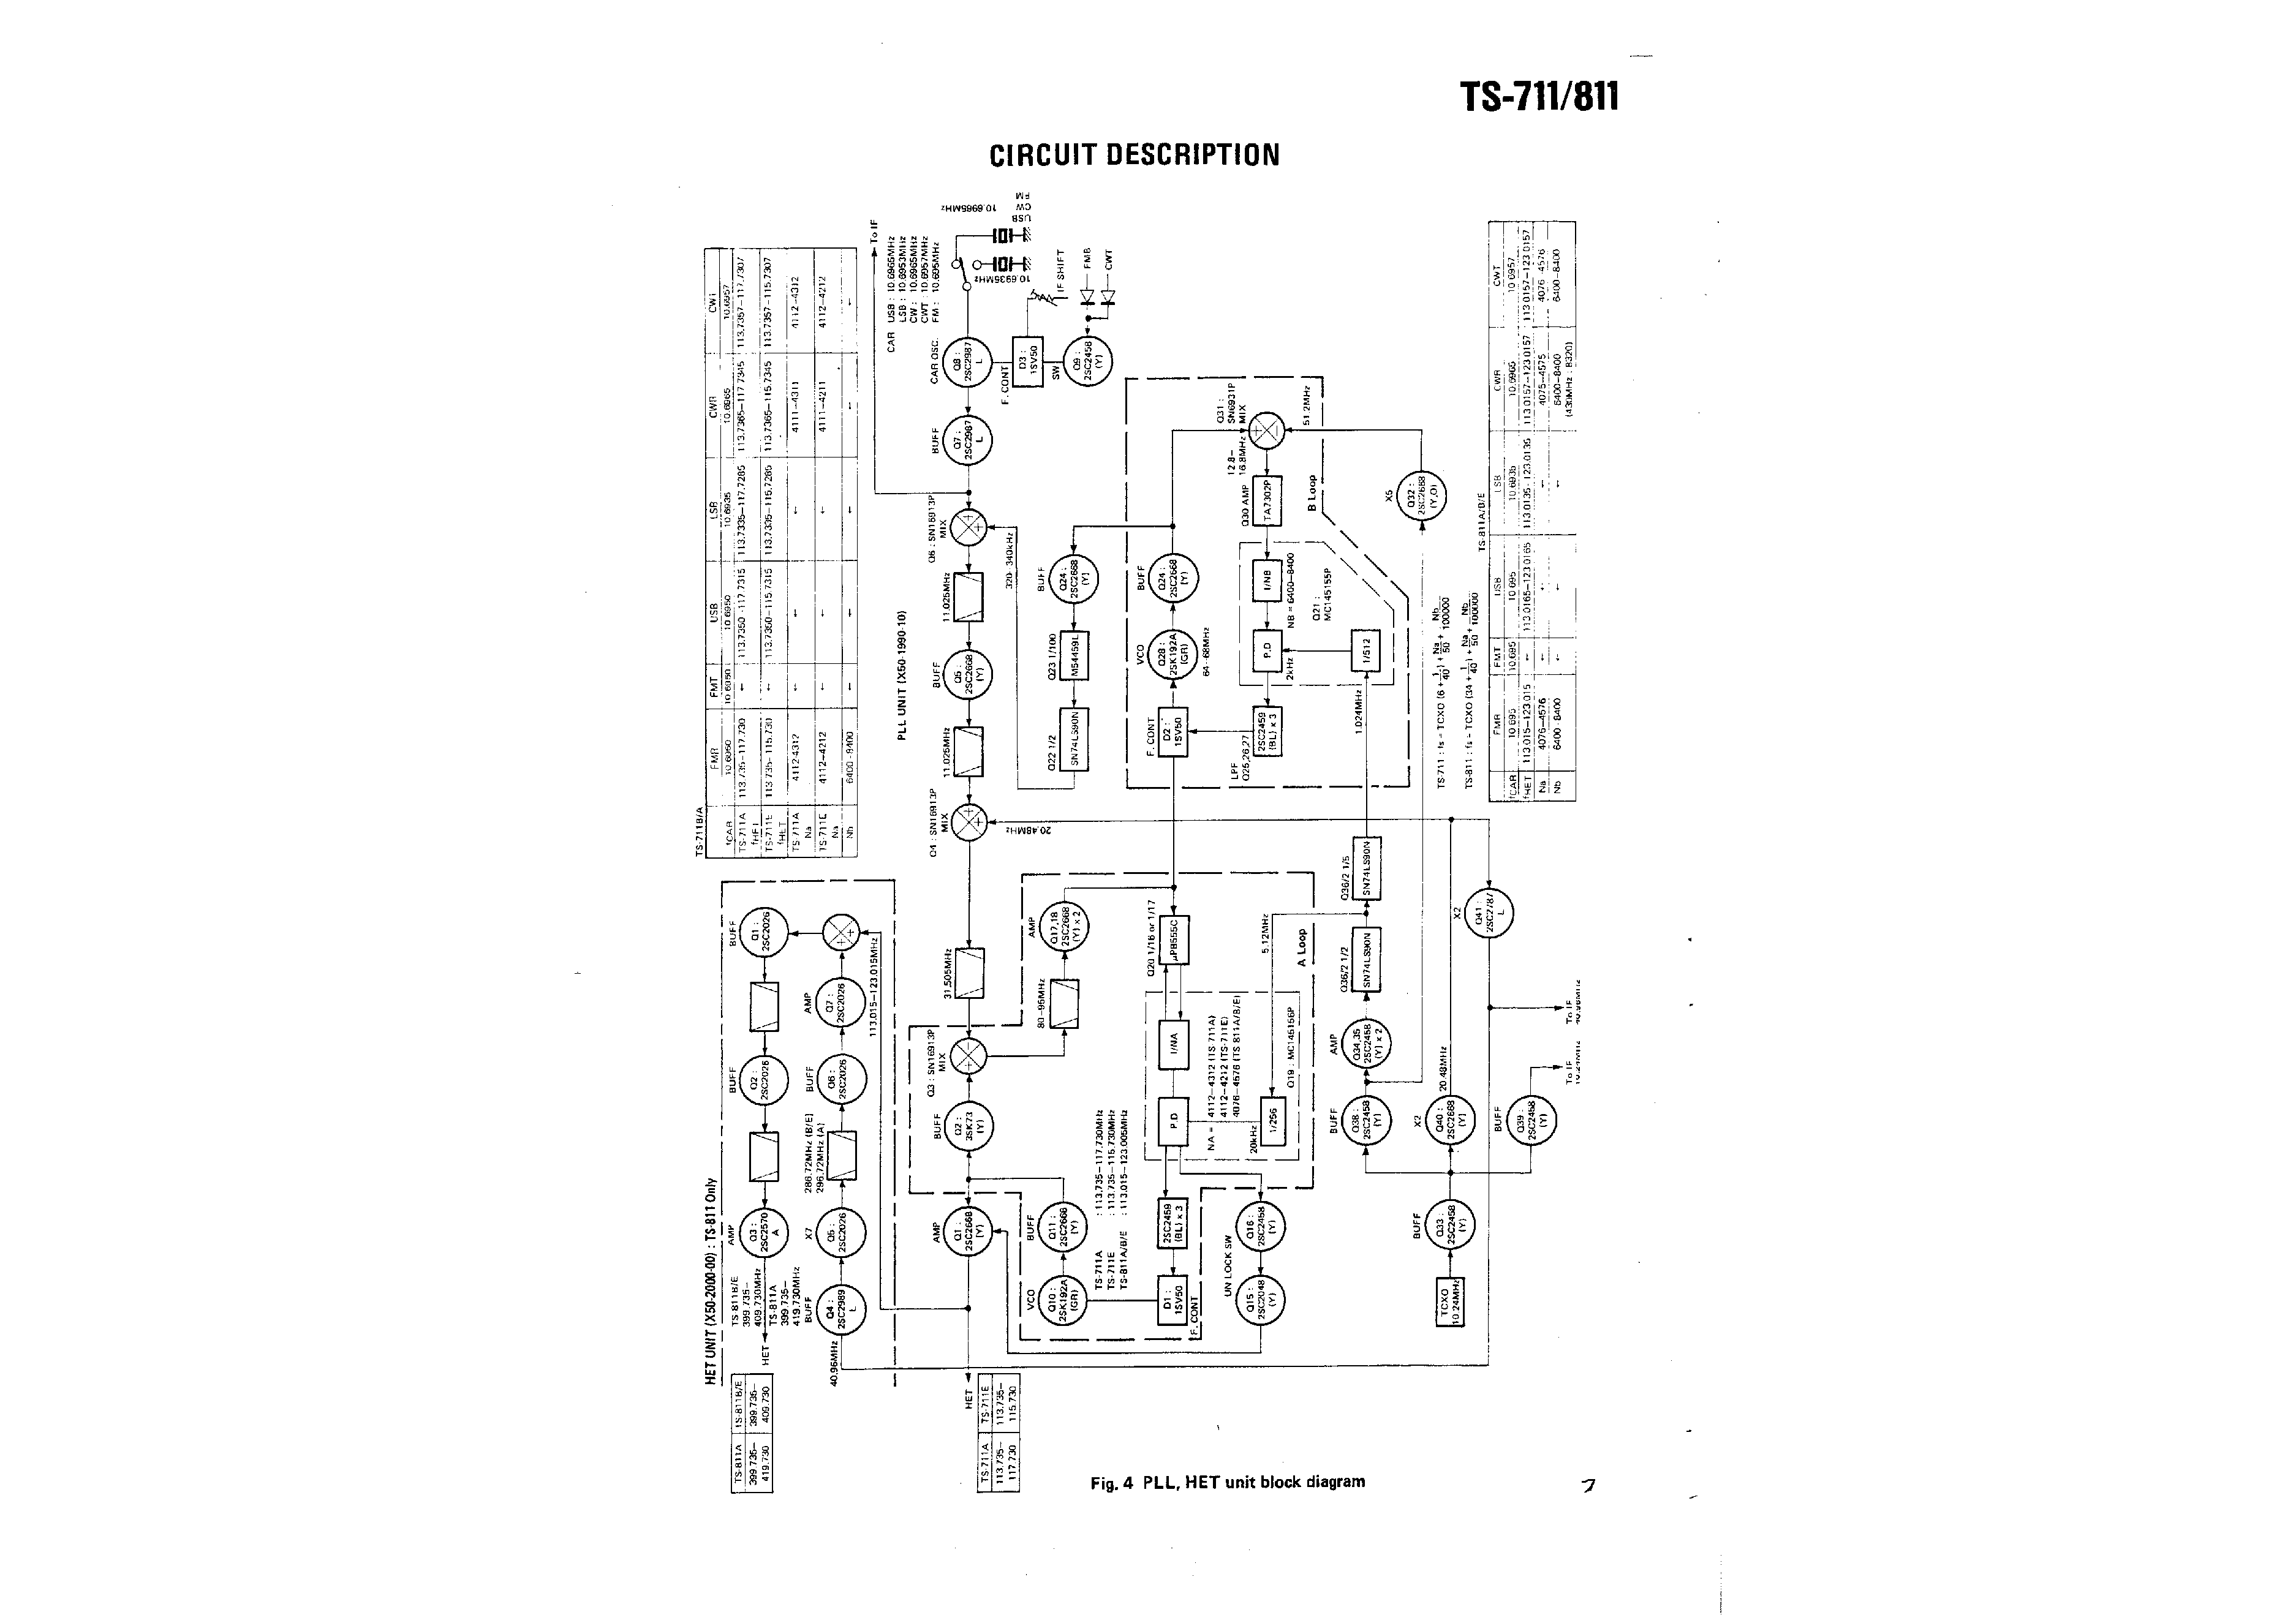 service manual for kenwood ts-711a